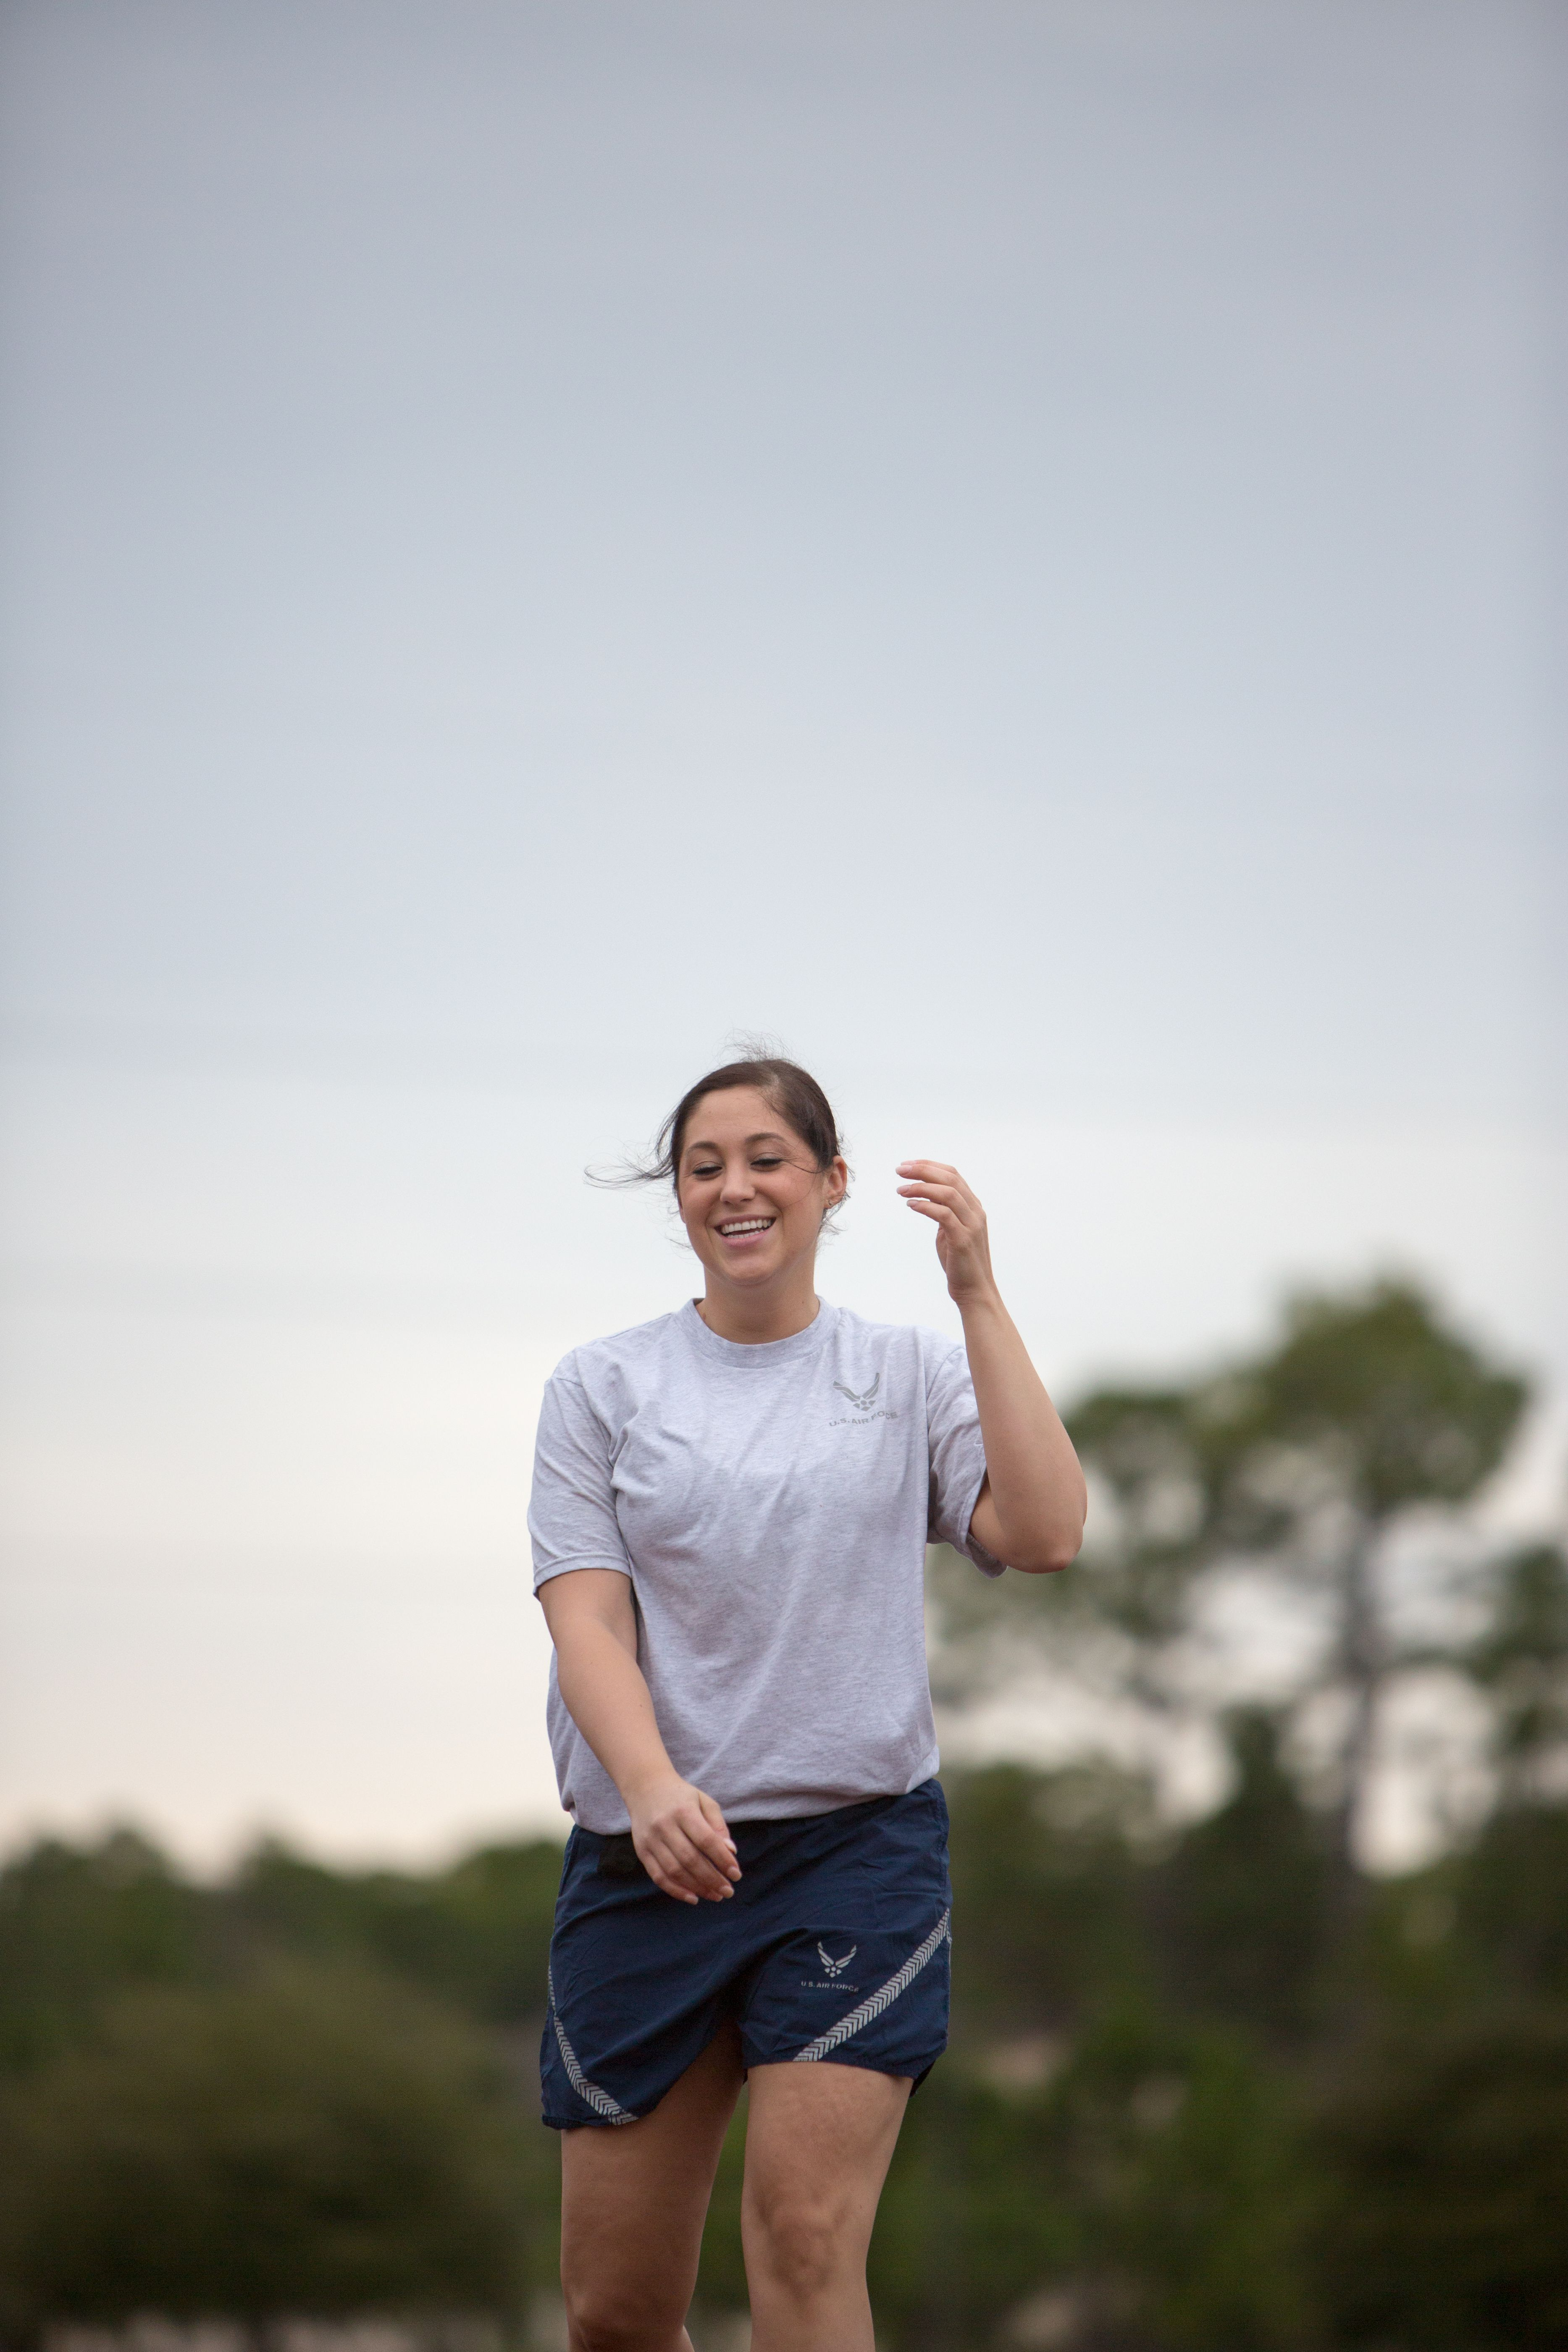 Air Force Basic Training Fitness Standards